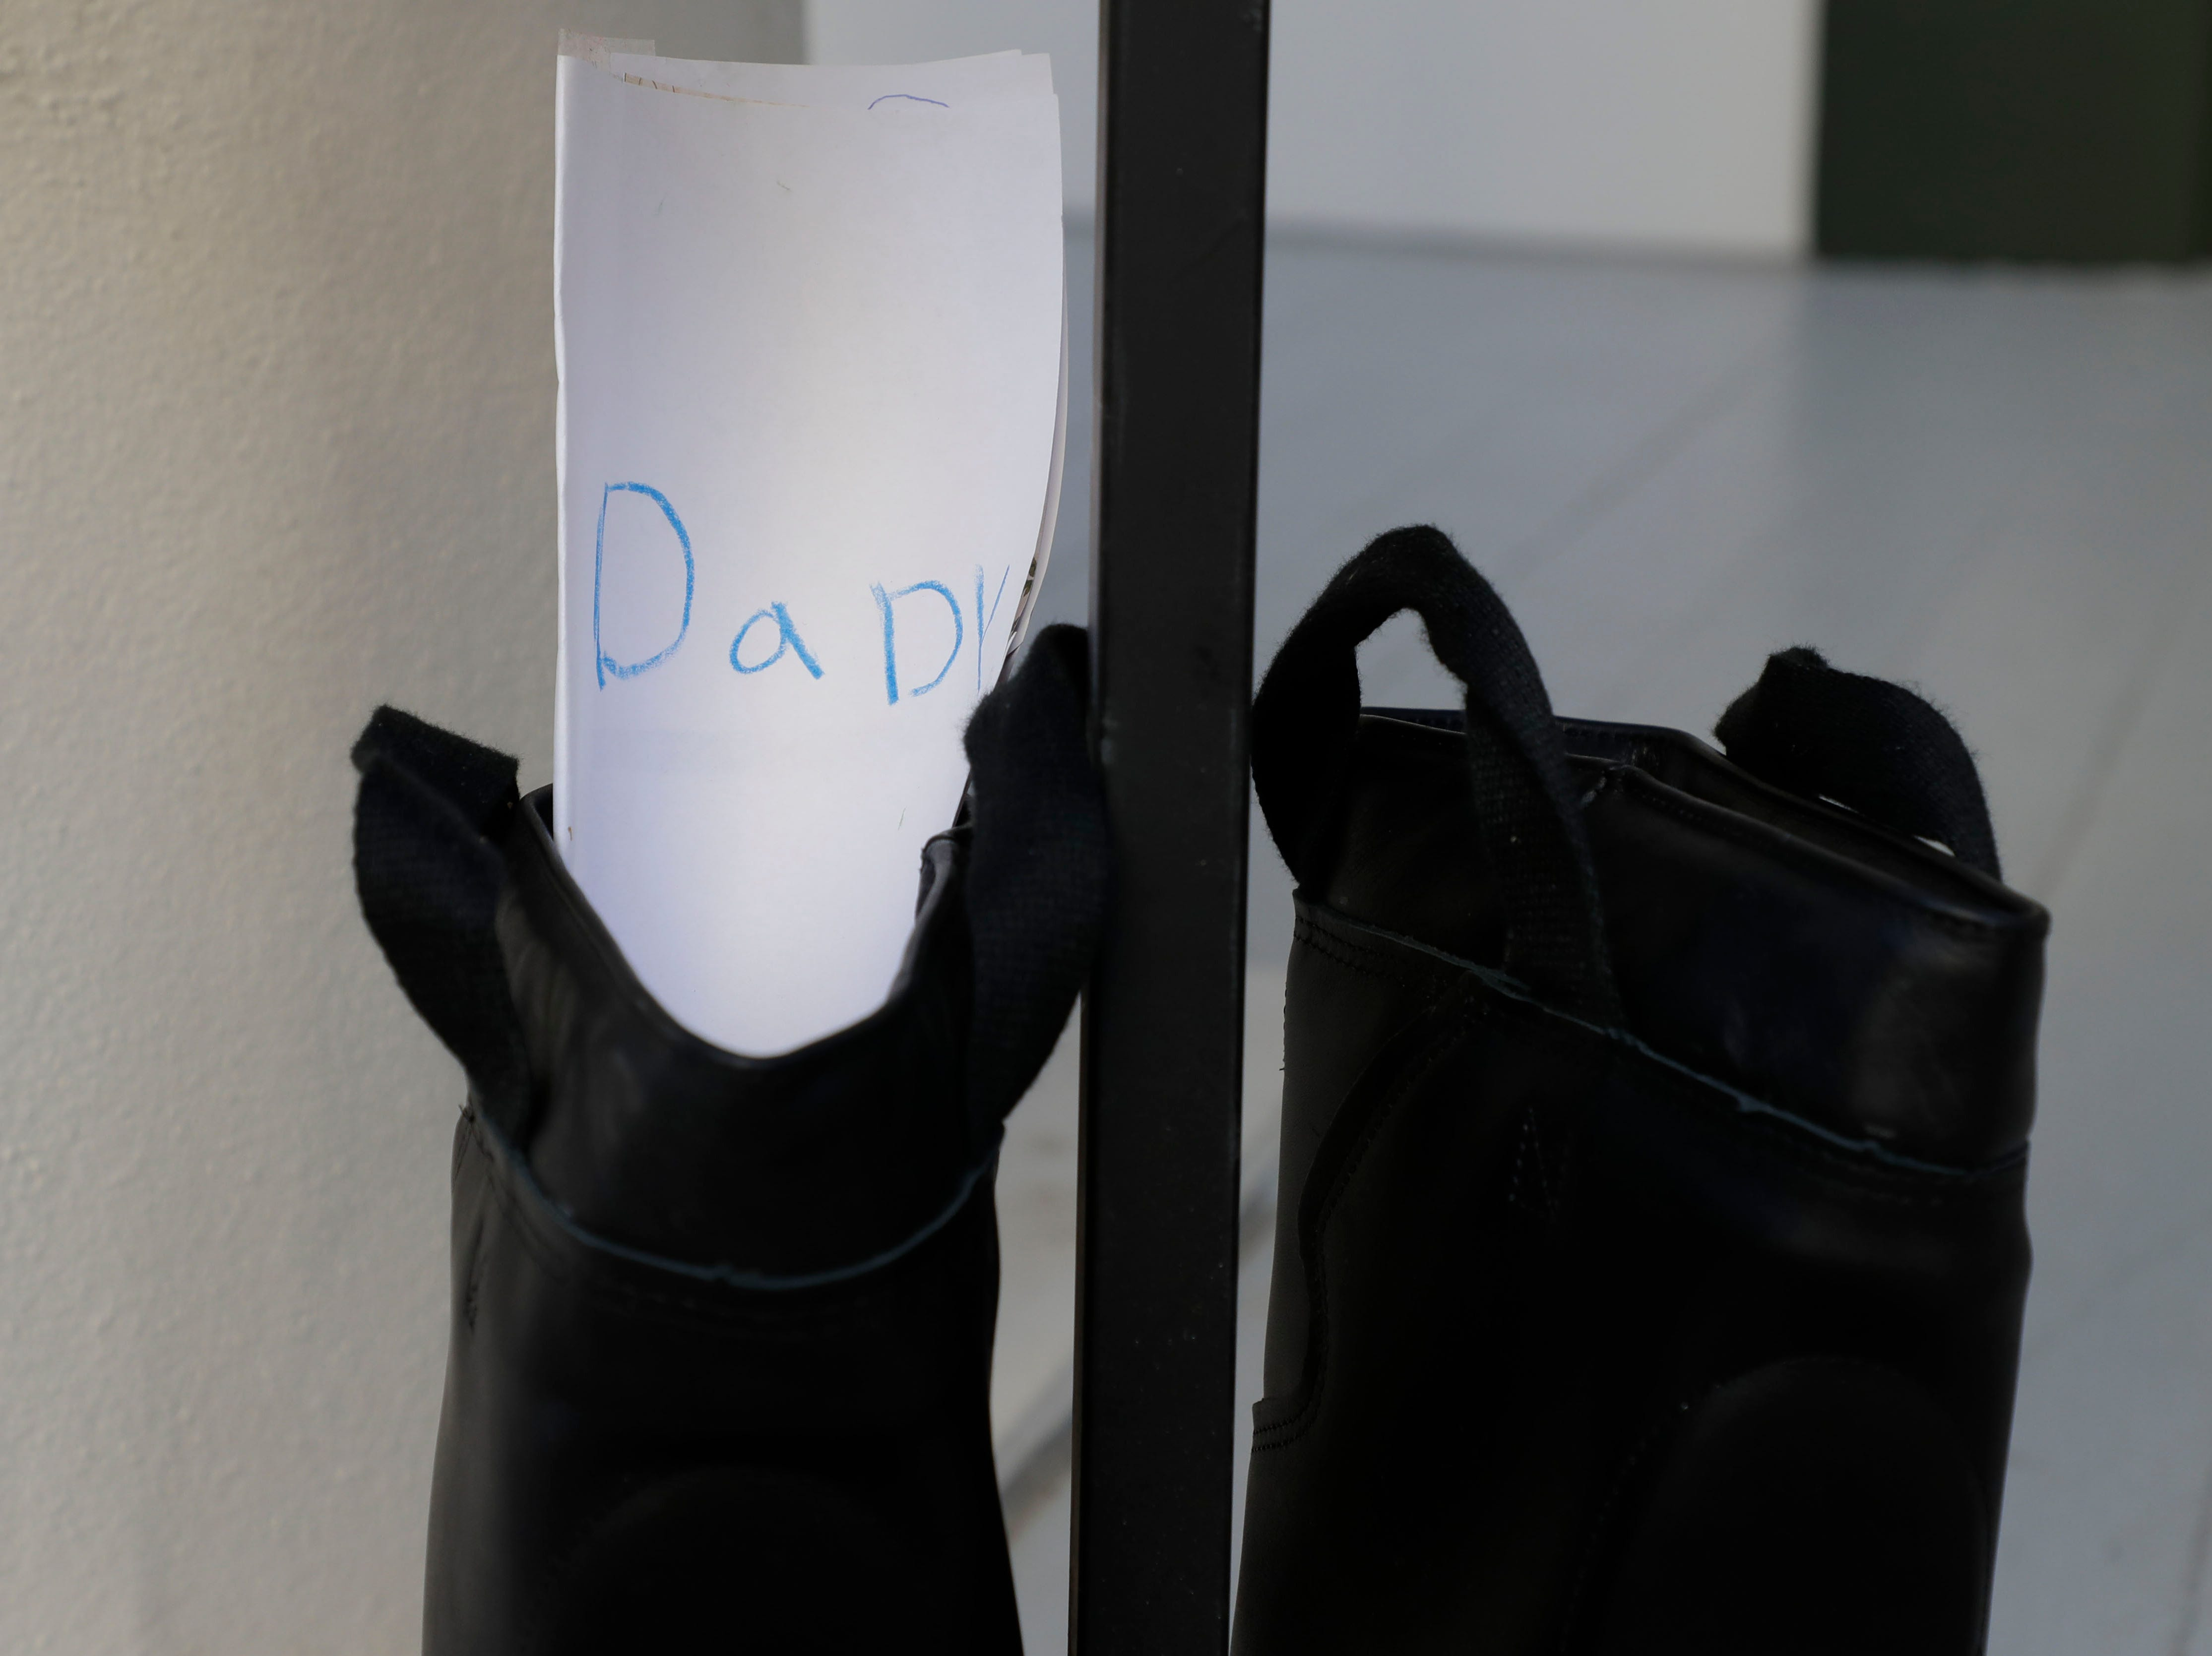 A letter written by Olivia Rabon, 10, tucked into a boot honoring her father who worked with the Jacksonville Beach Fire Department and passed after battling appendix cancer. Firefighters and their families from around the state create a display at the Capitol of 500 pairs of boots in honor of firefighters who lost their battle or are battling with cancer caused from smoke inhalation and carcinogens Thursday, March 7, 2019. The state of Florida is one of five states in the country that does not have a bill acknowledging cancer is a job-related illness.